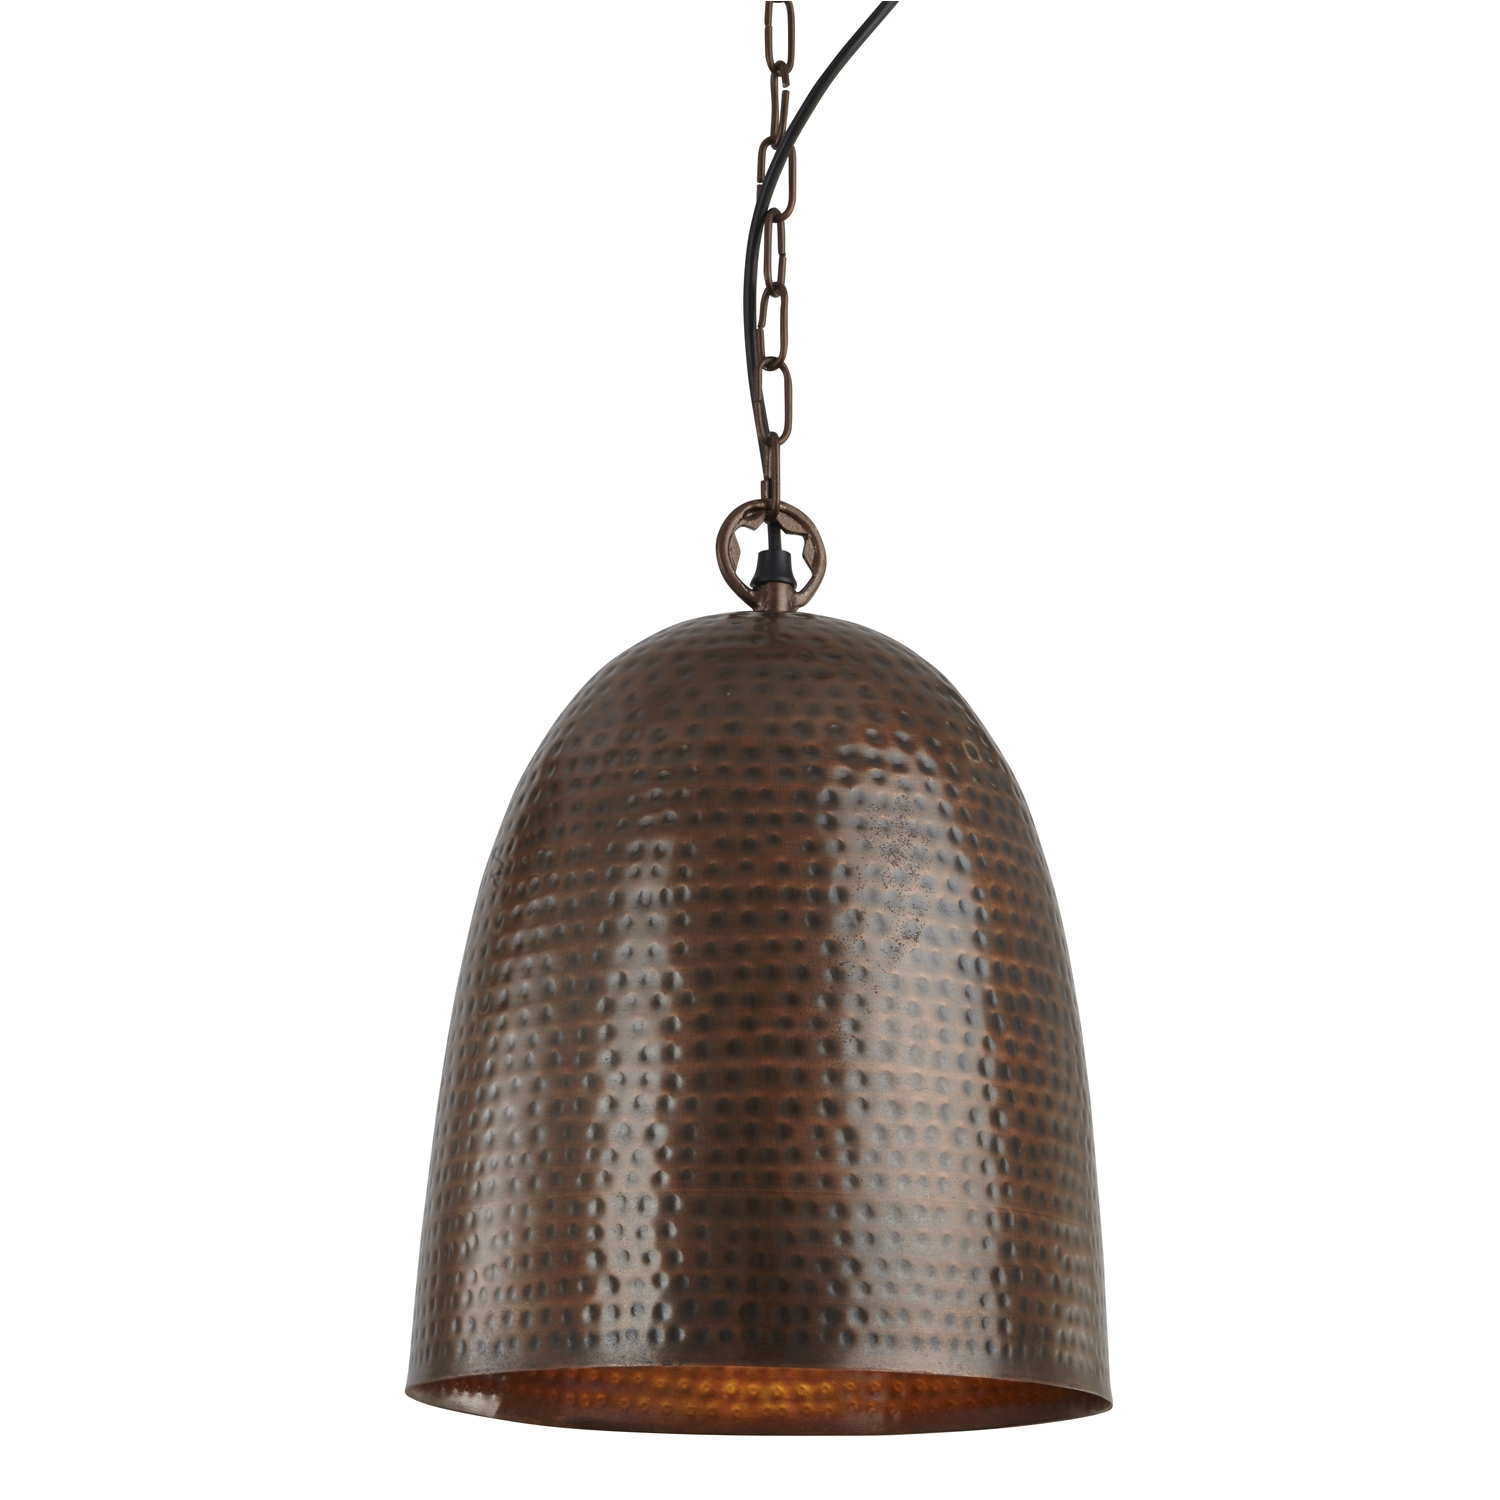 Hammered Pendant Light, Antique Bronze